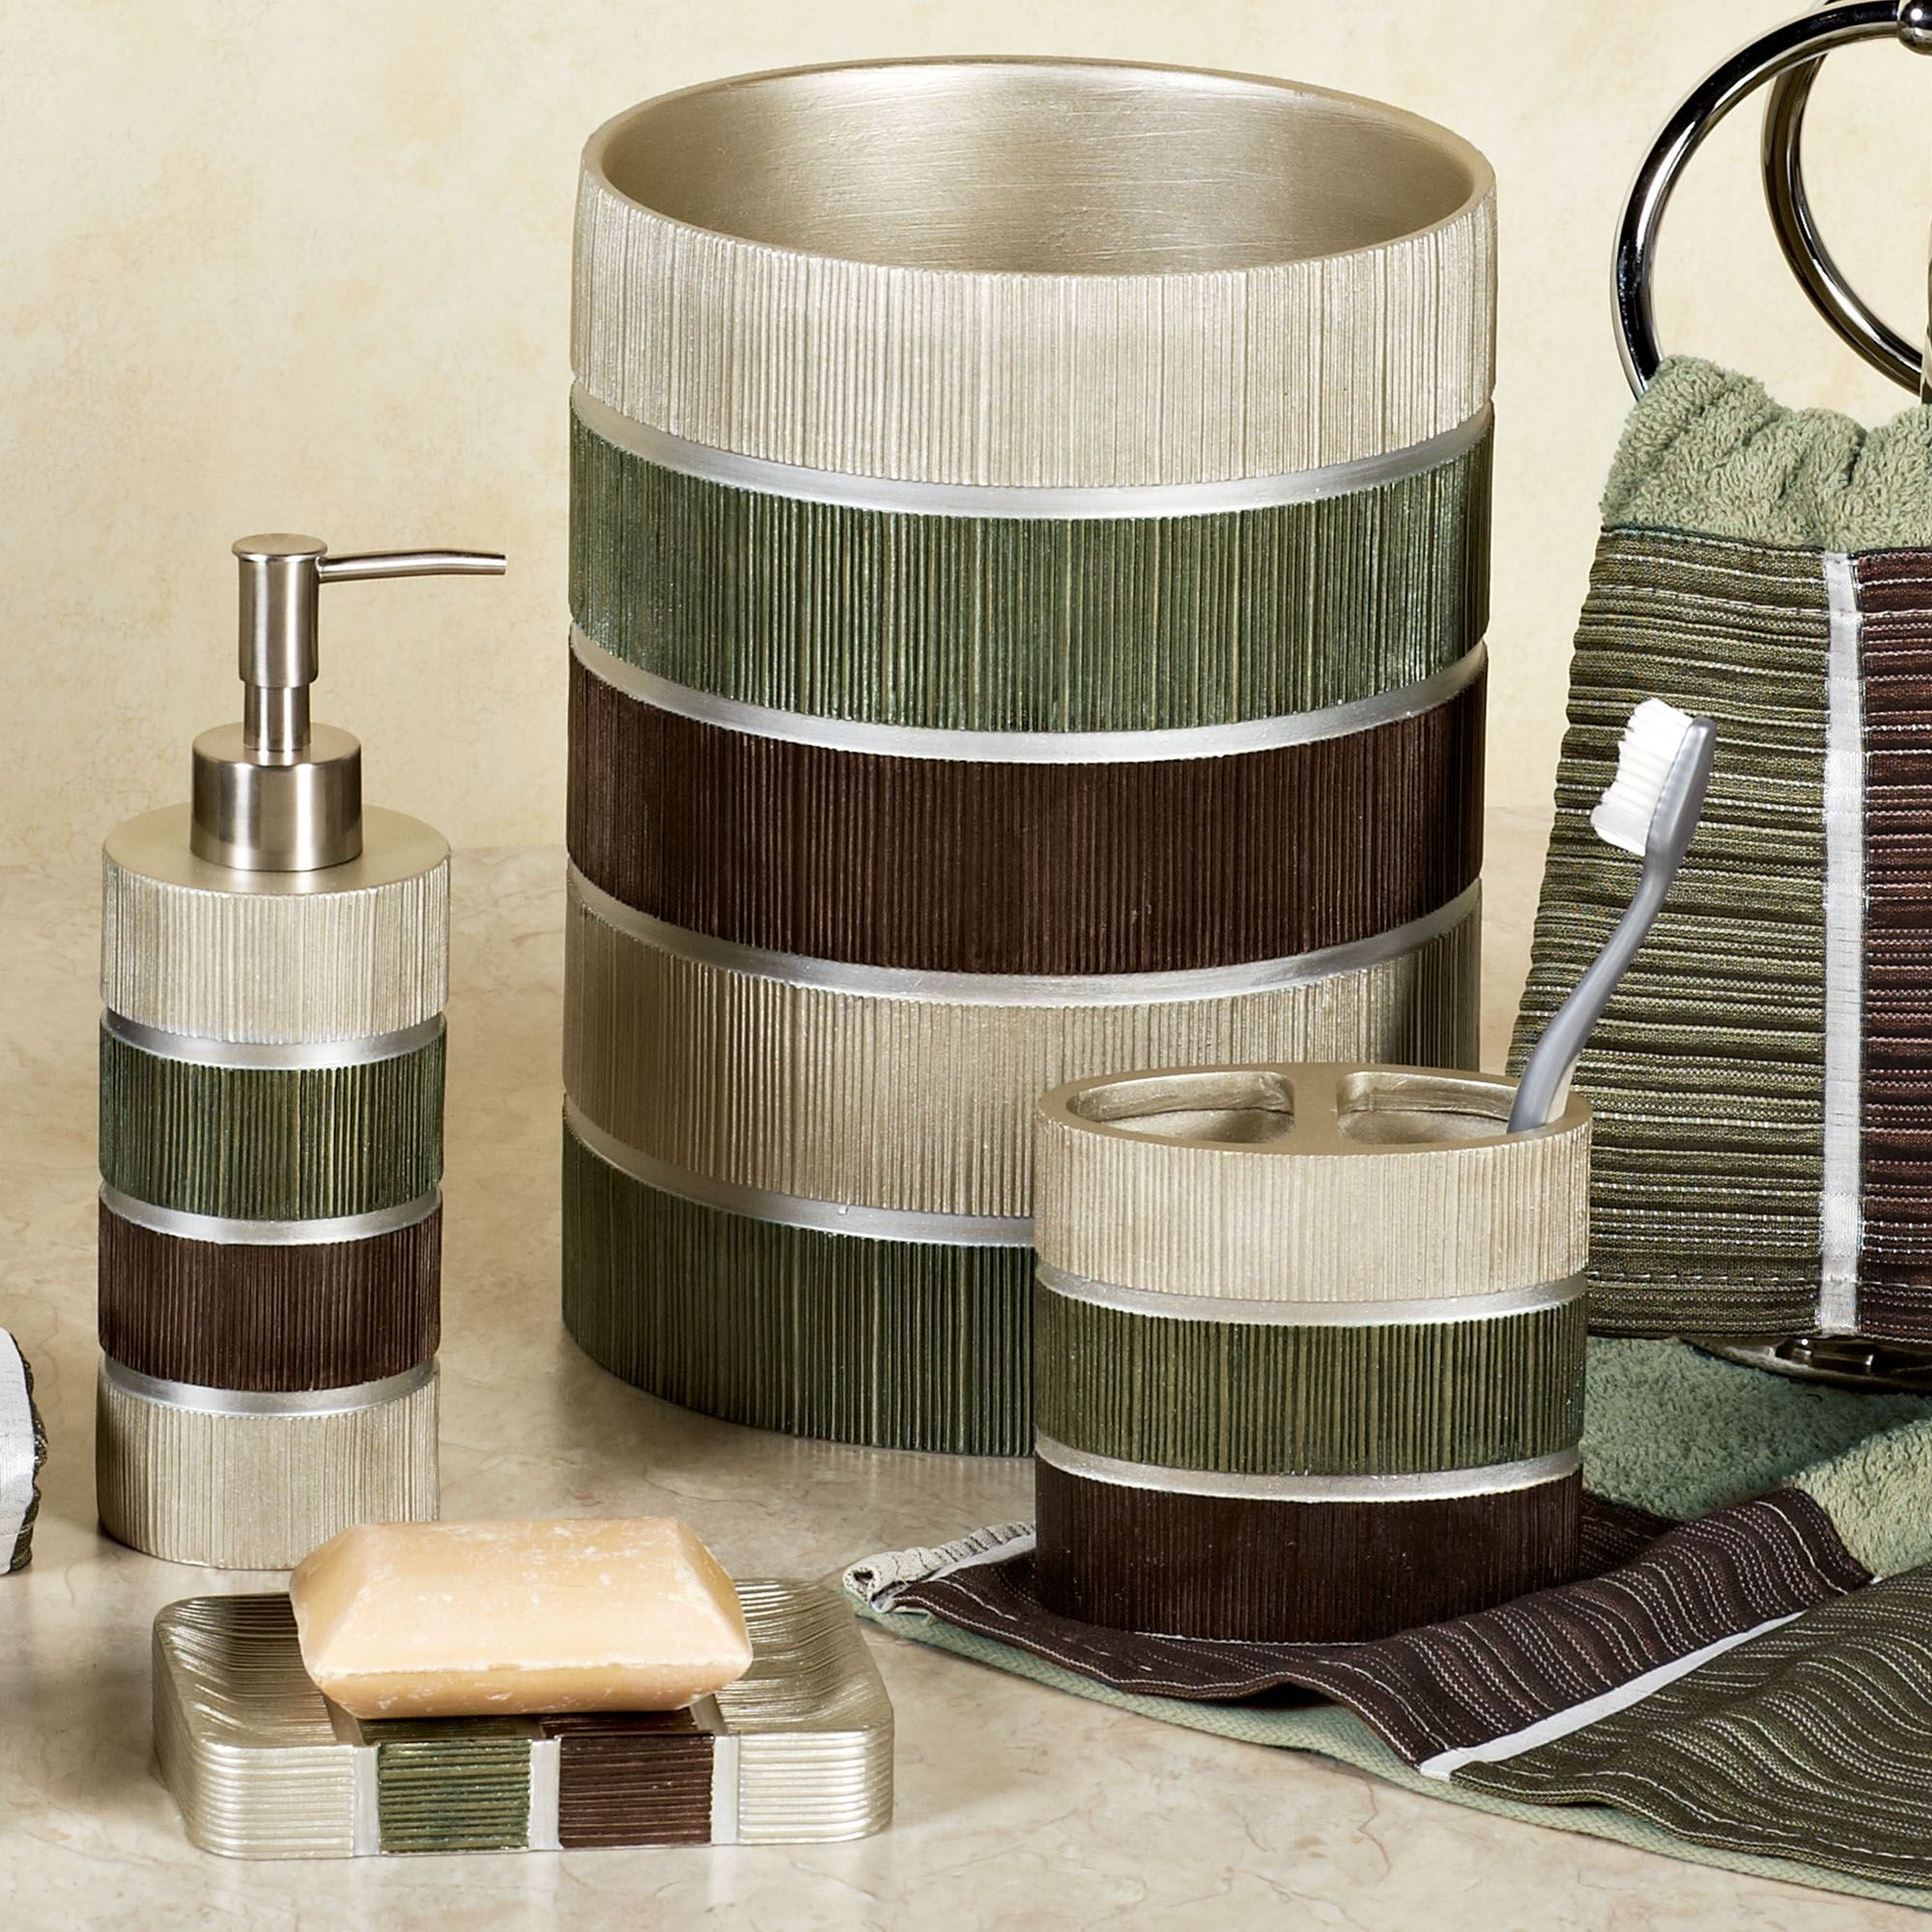 Modern line sage striped bath accessories - Modern bathroom accessories sets ...